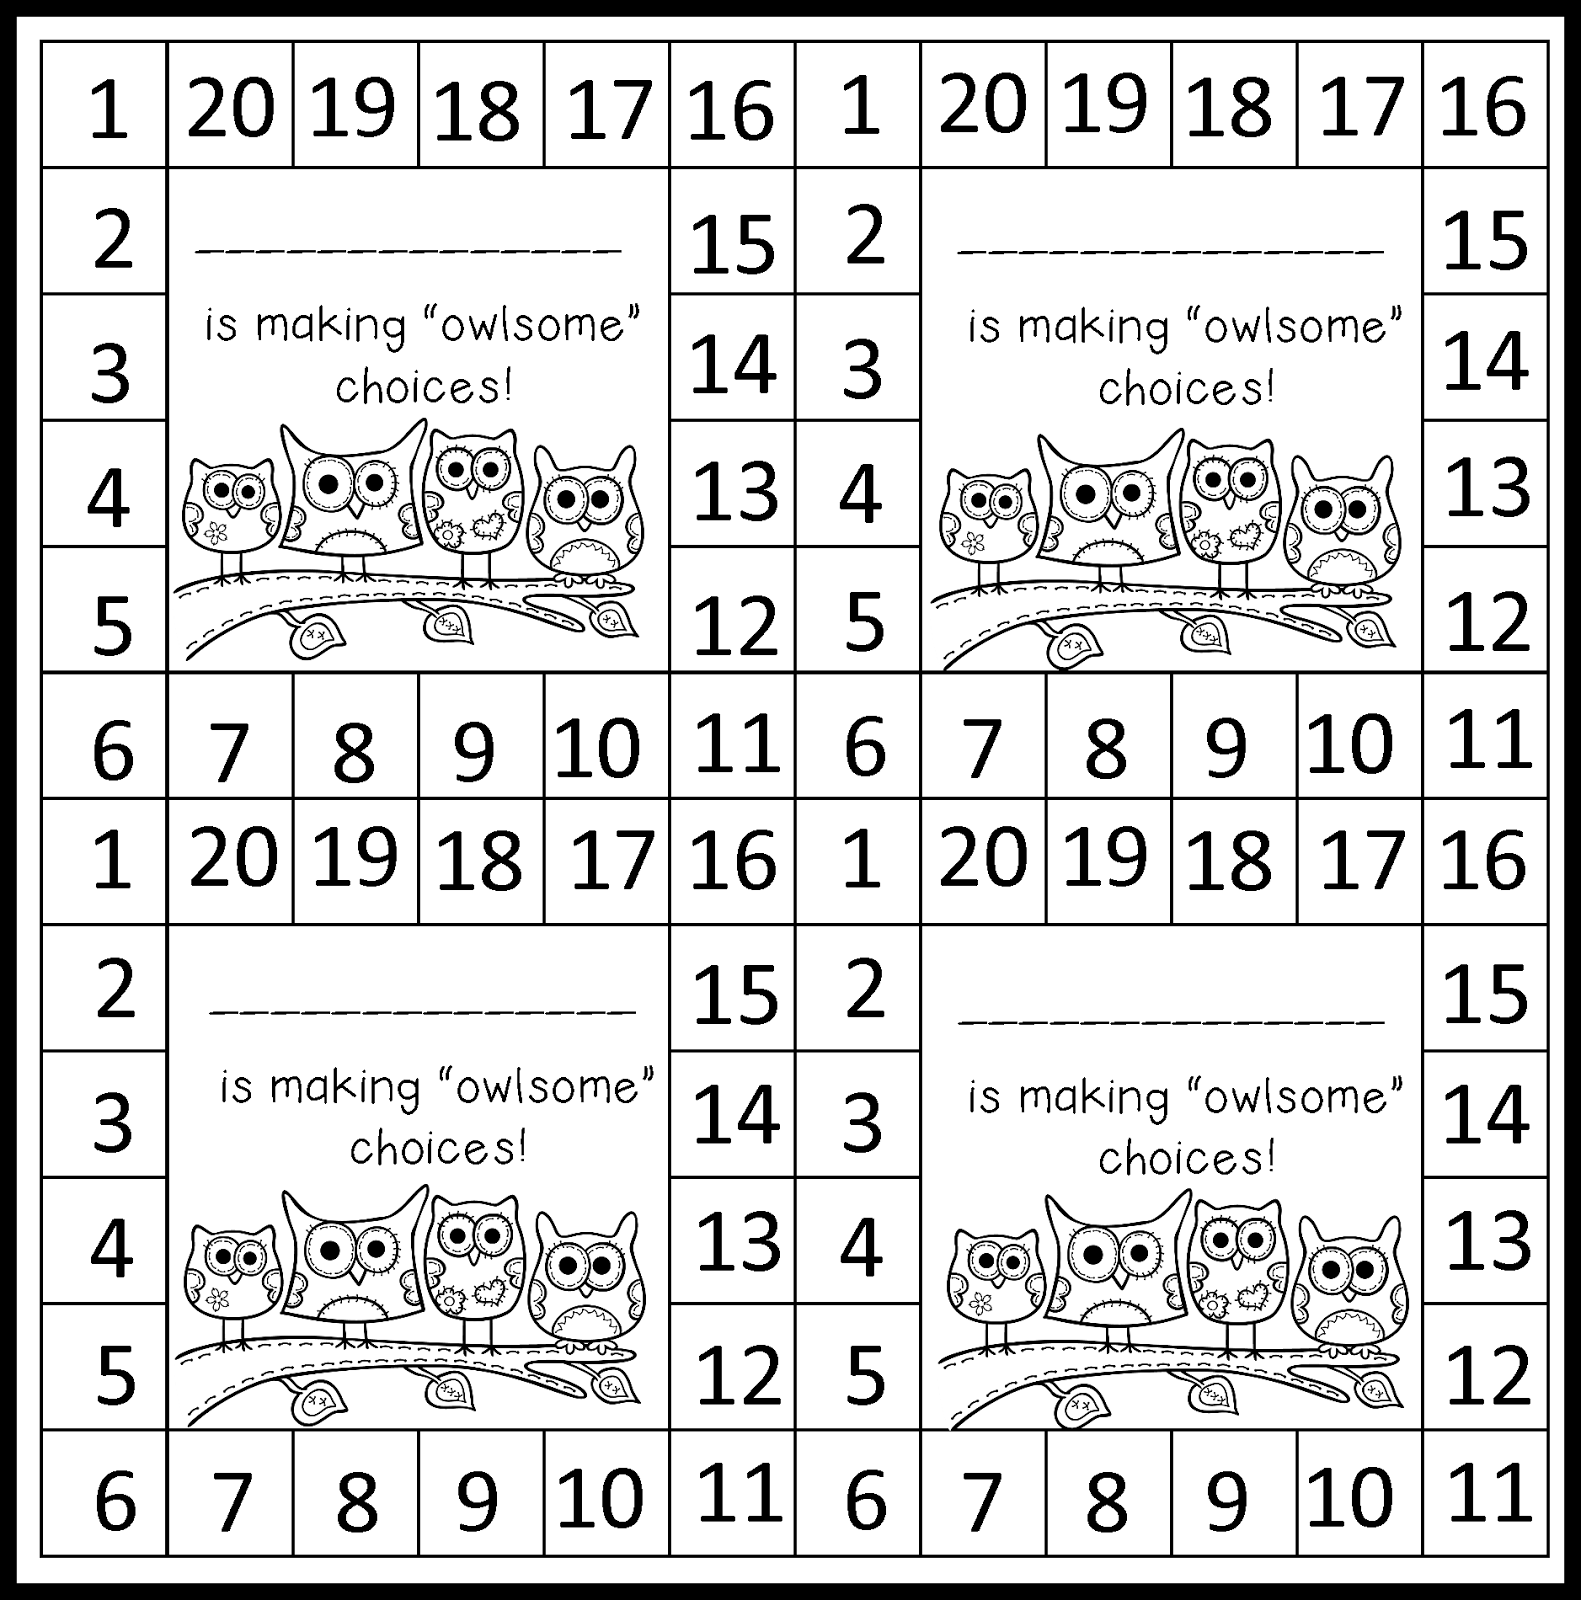 Behavior Punch Cards Behavior Punch Cards Punch Cards Card Template